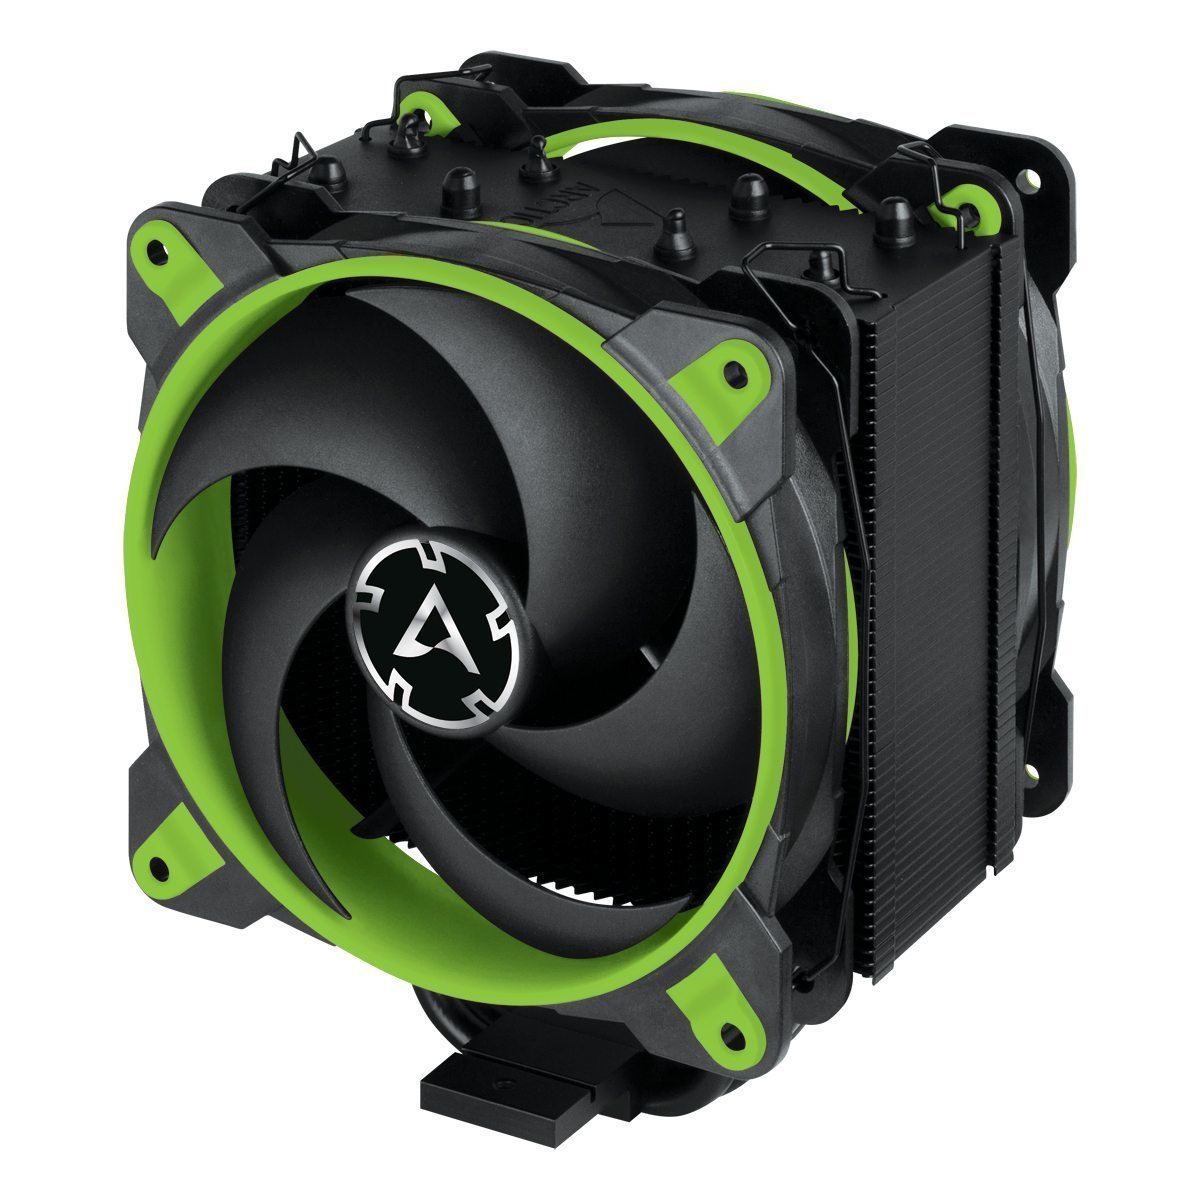 Arctic охладител Freezer 34 eSports DUO - Green - LGA2066/LGA2011/LGA1151/AM4